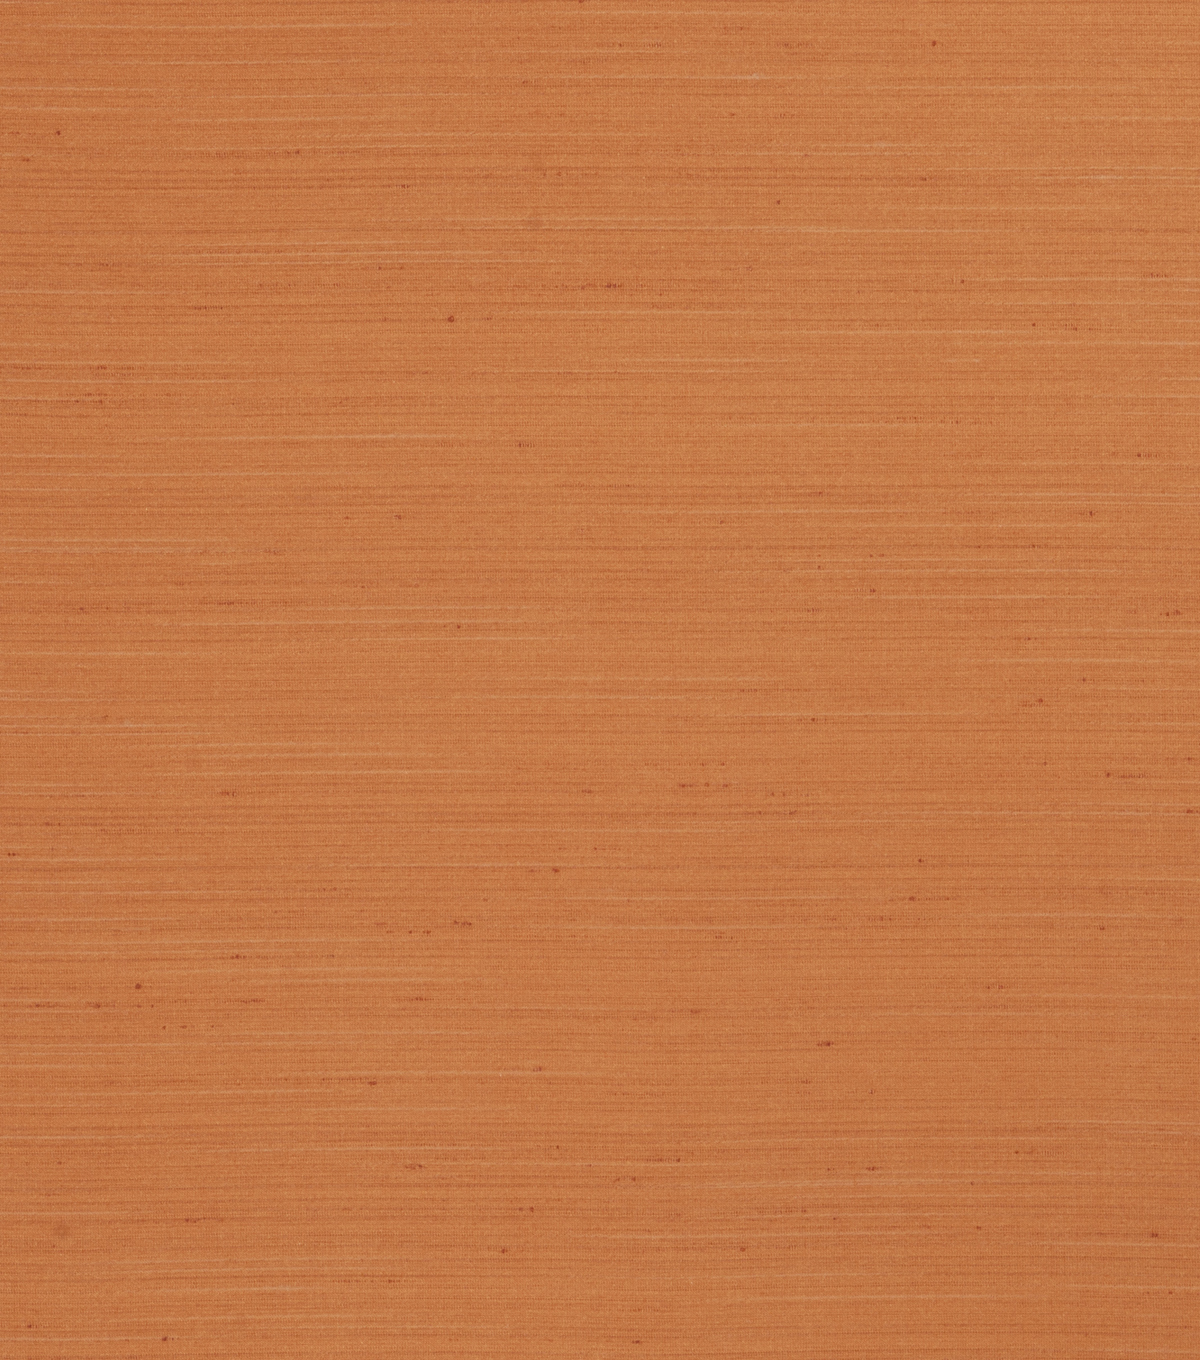 Eaton Square Upholstery Fabric 55\u0022-Amber/Burnt Orange